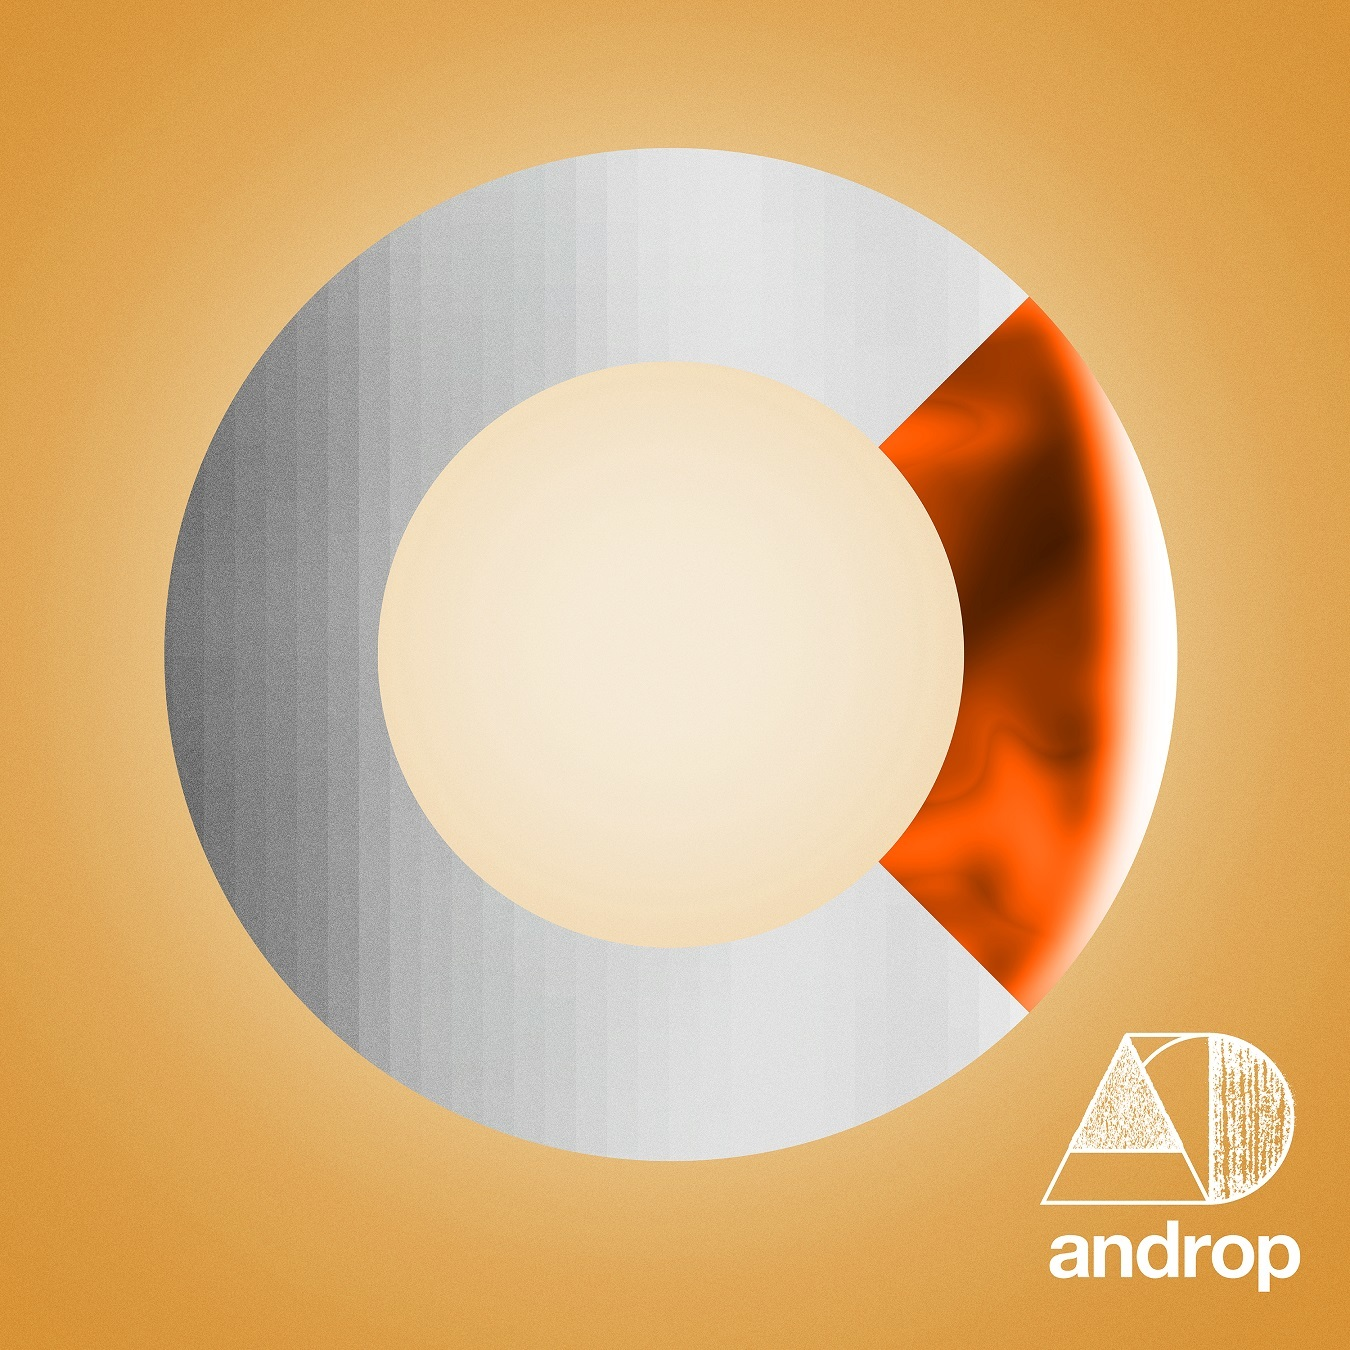 androp「C」